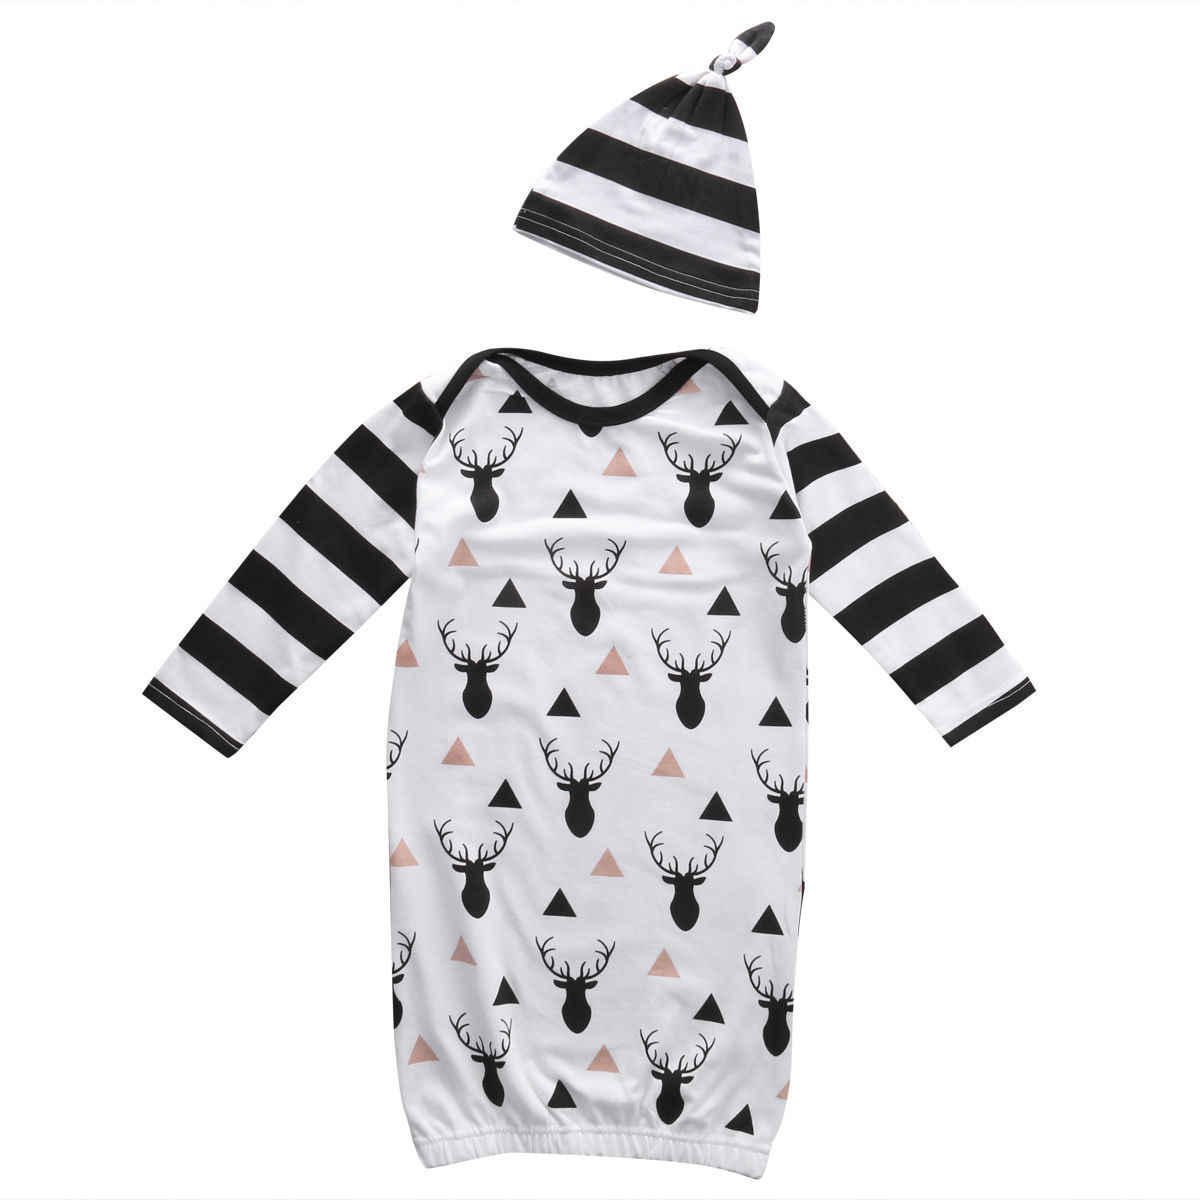 9f42e0bb7 Detail Feedback Questions about 2pcs Newborn Infant Toddler Kids Baby Boy  Girl Clothes T shirt Rompers Hat Sleepwear Blanket Sleepers Outfit Set on  ...